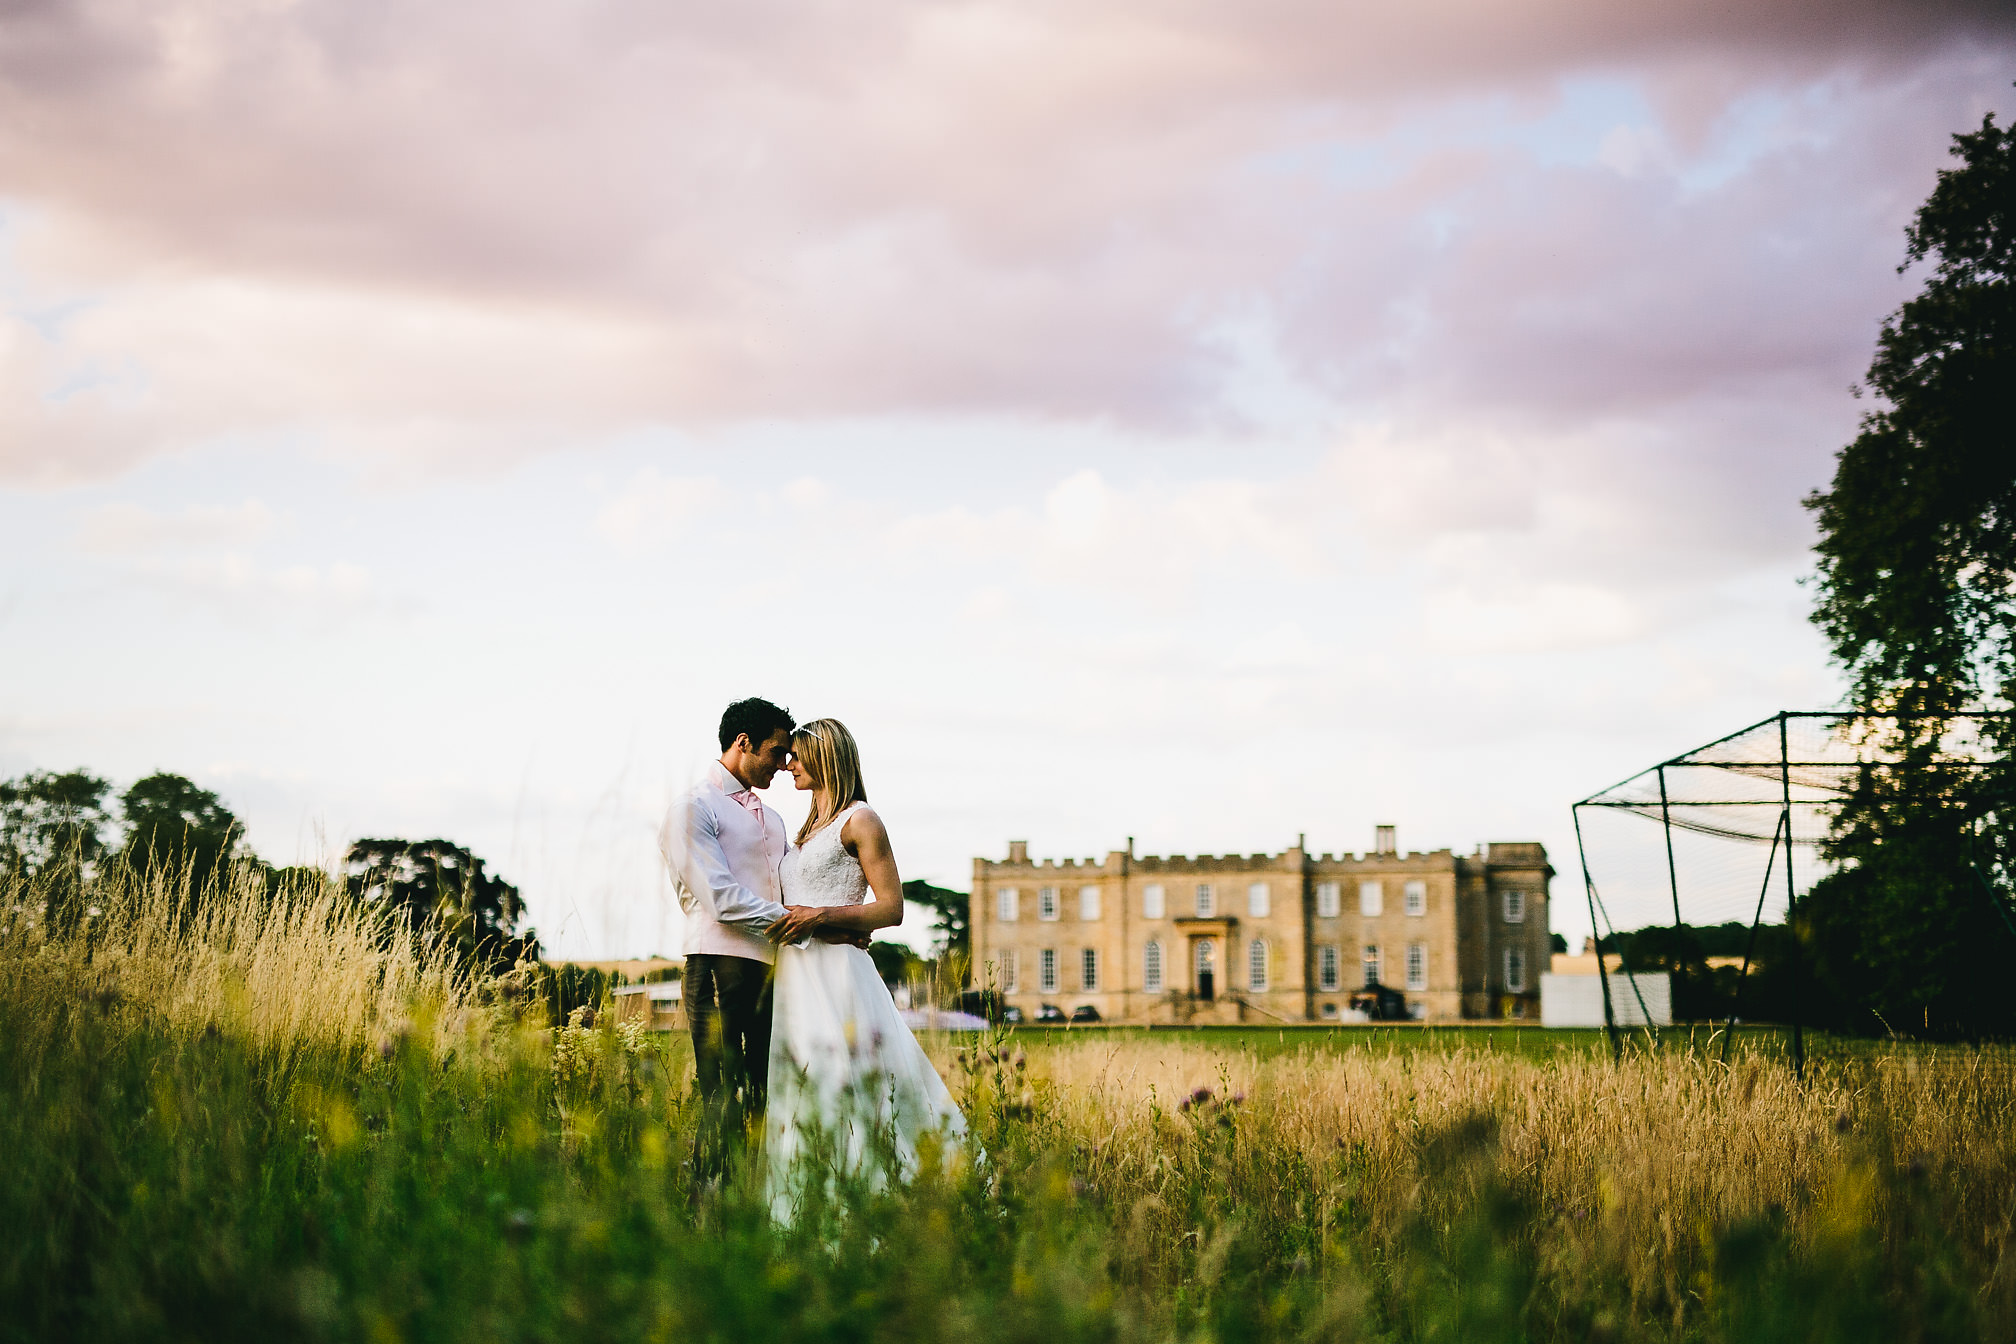 Gorgeous Wedding Portrait at Kimbolton Castle